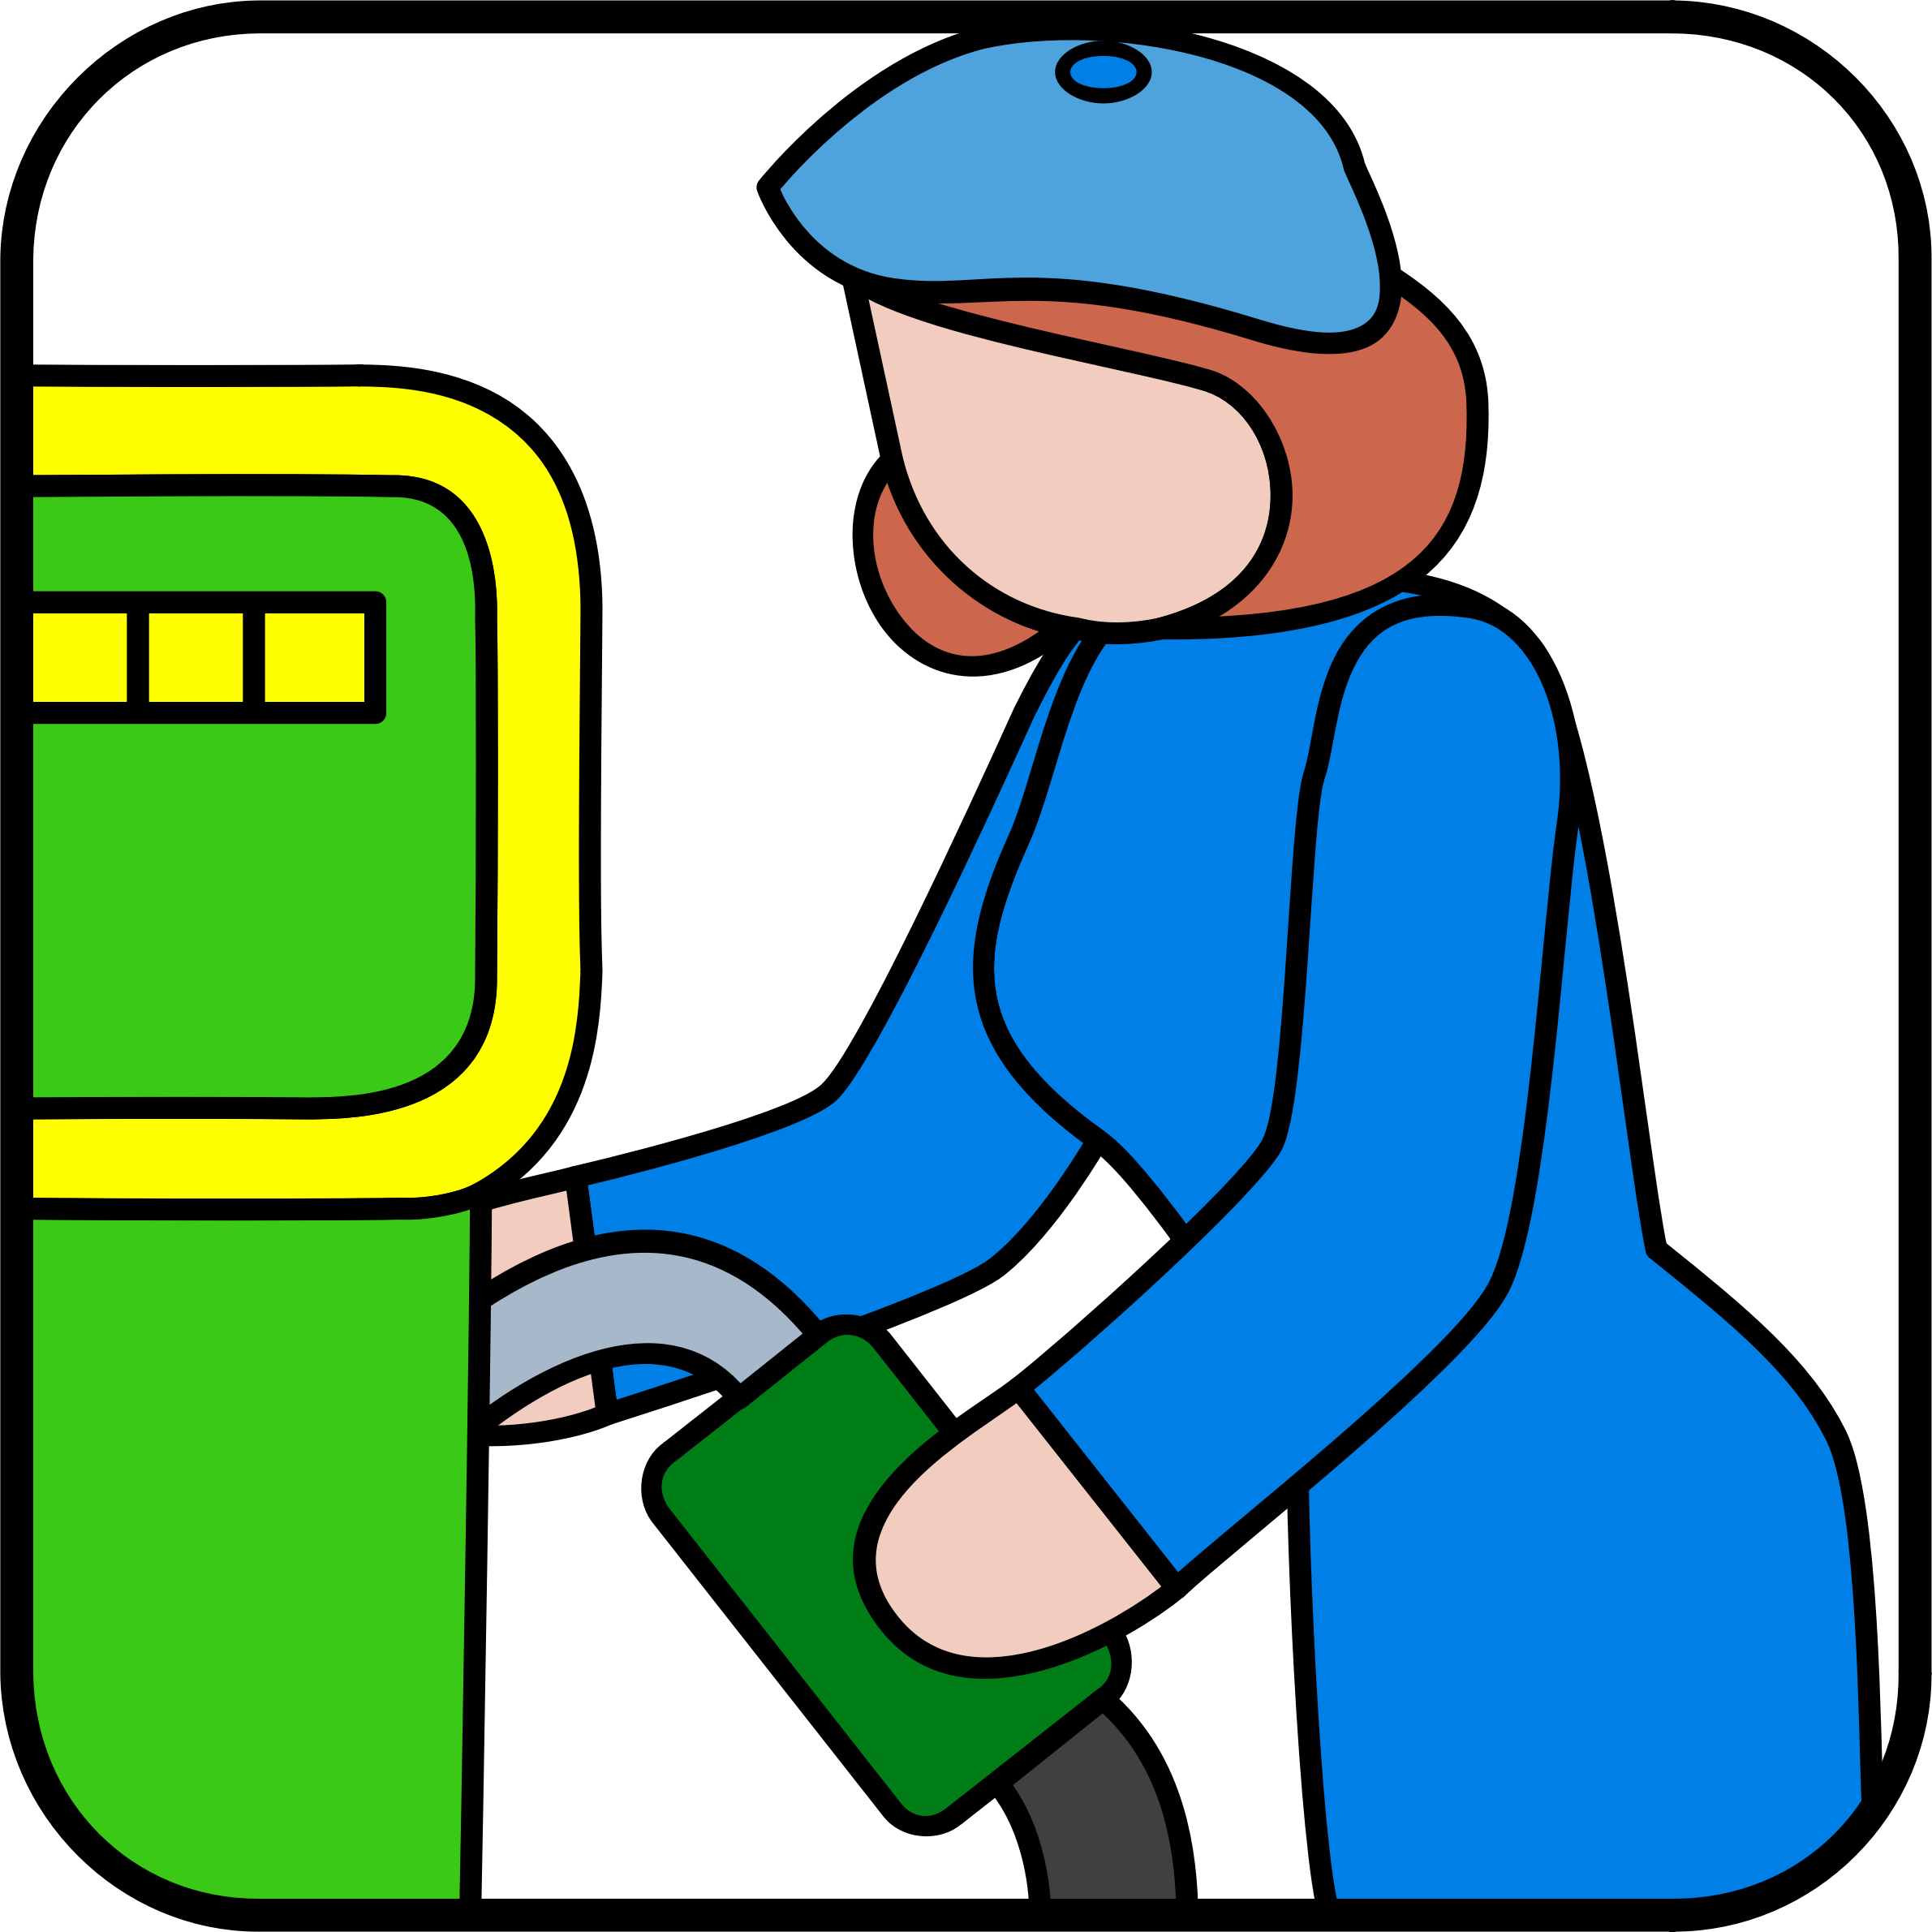 pumping gas by cactus cowboy